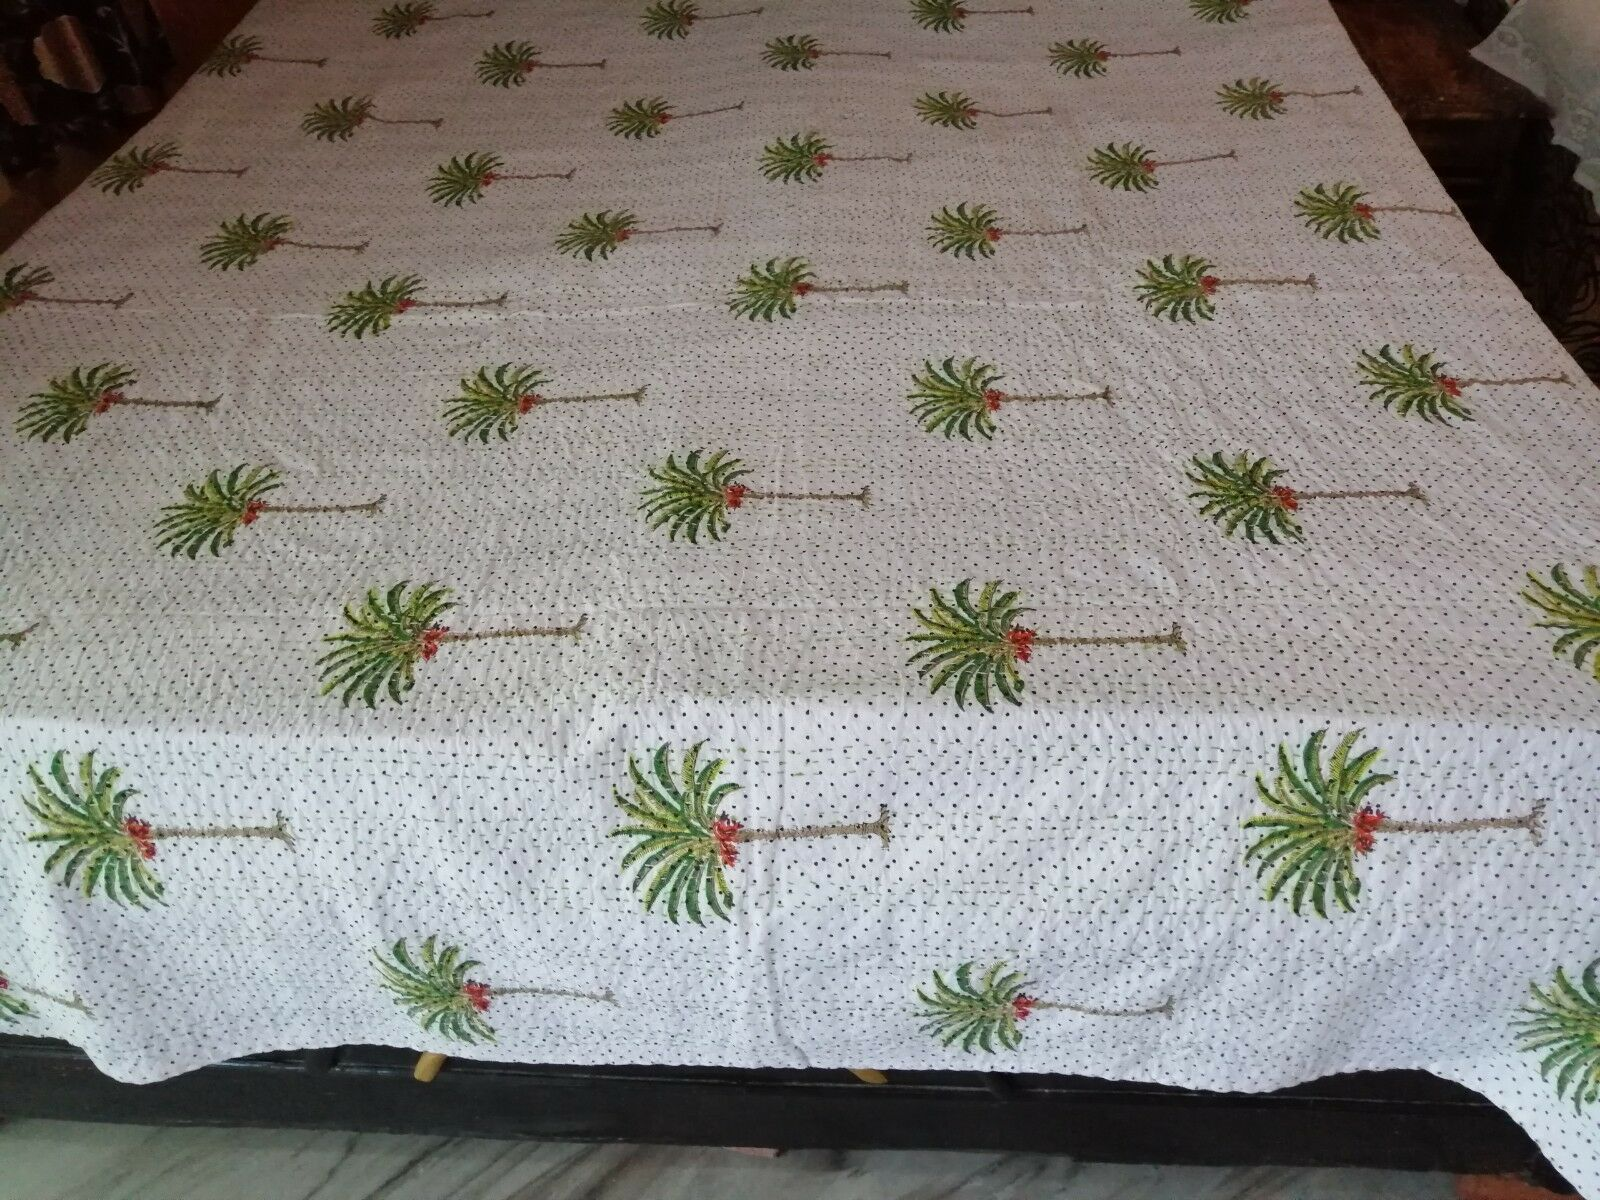 Christmas special Tree Print Handmade IndianCotton Kantha Quilt coverletBlanket